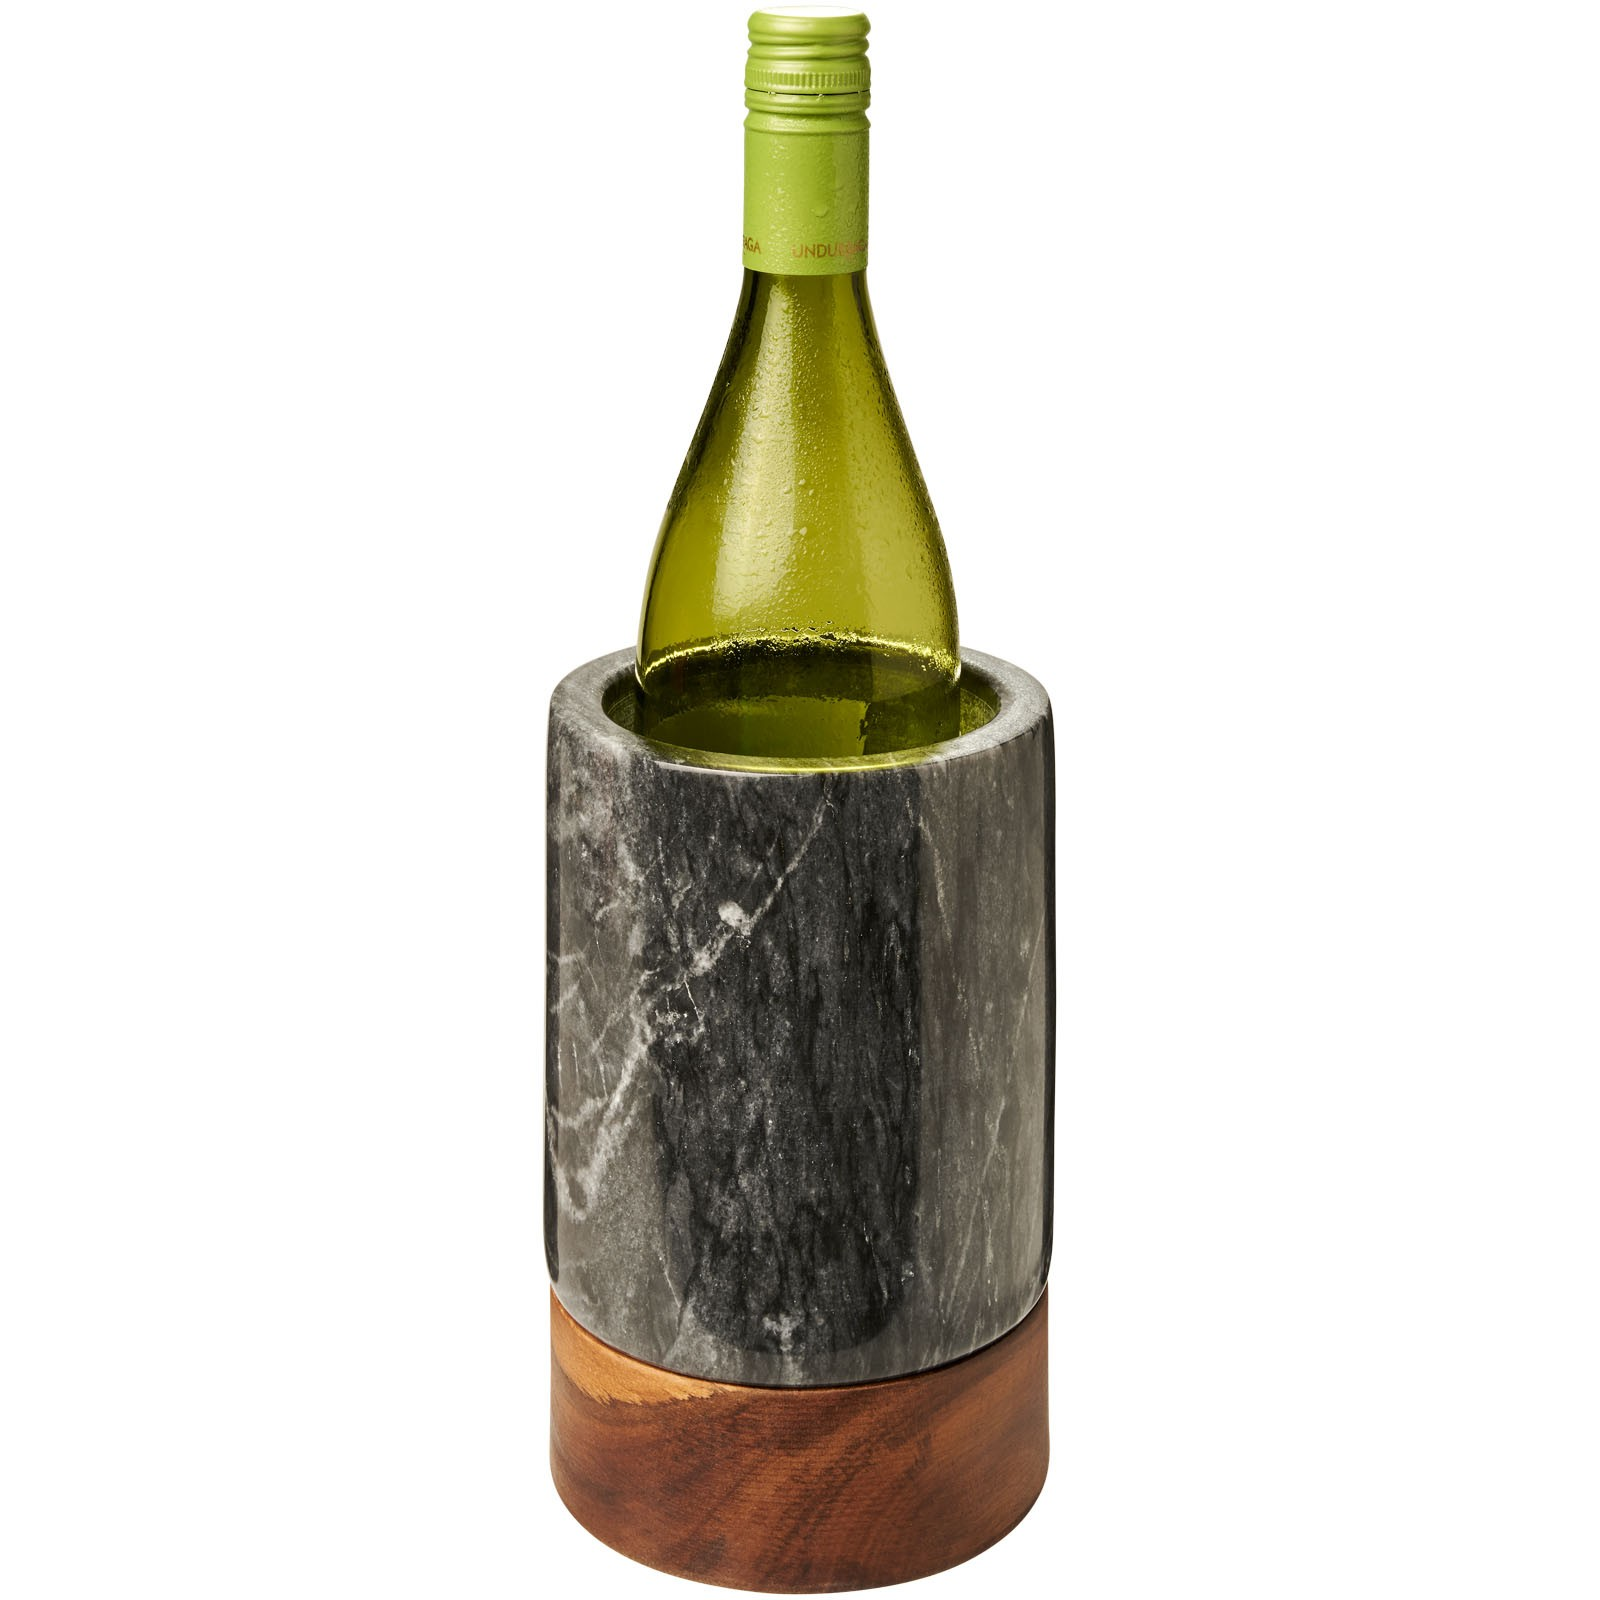 Harlow marble and wood wine cooler